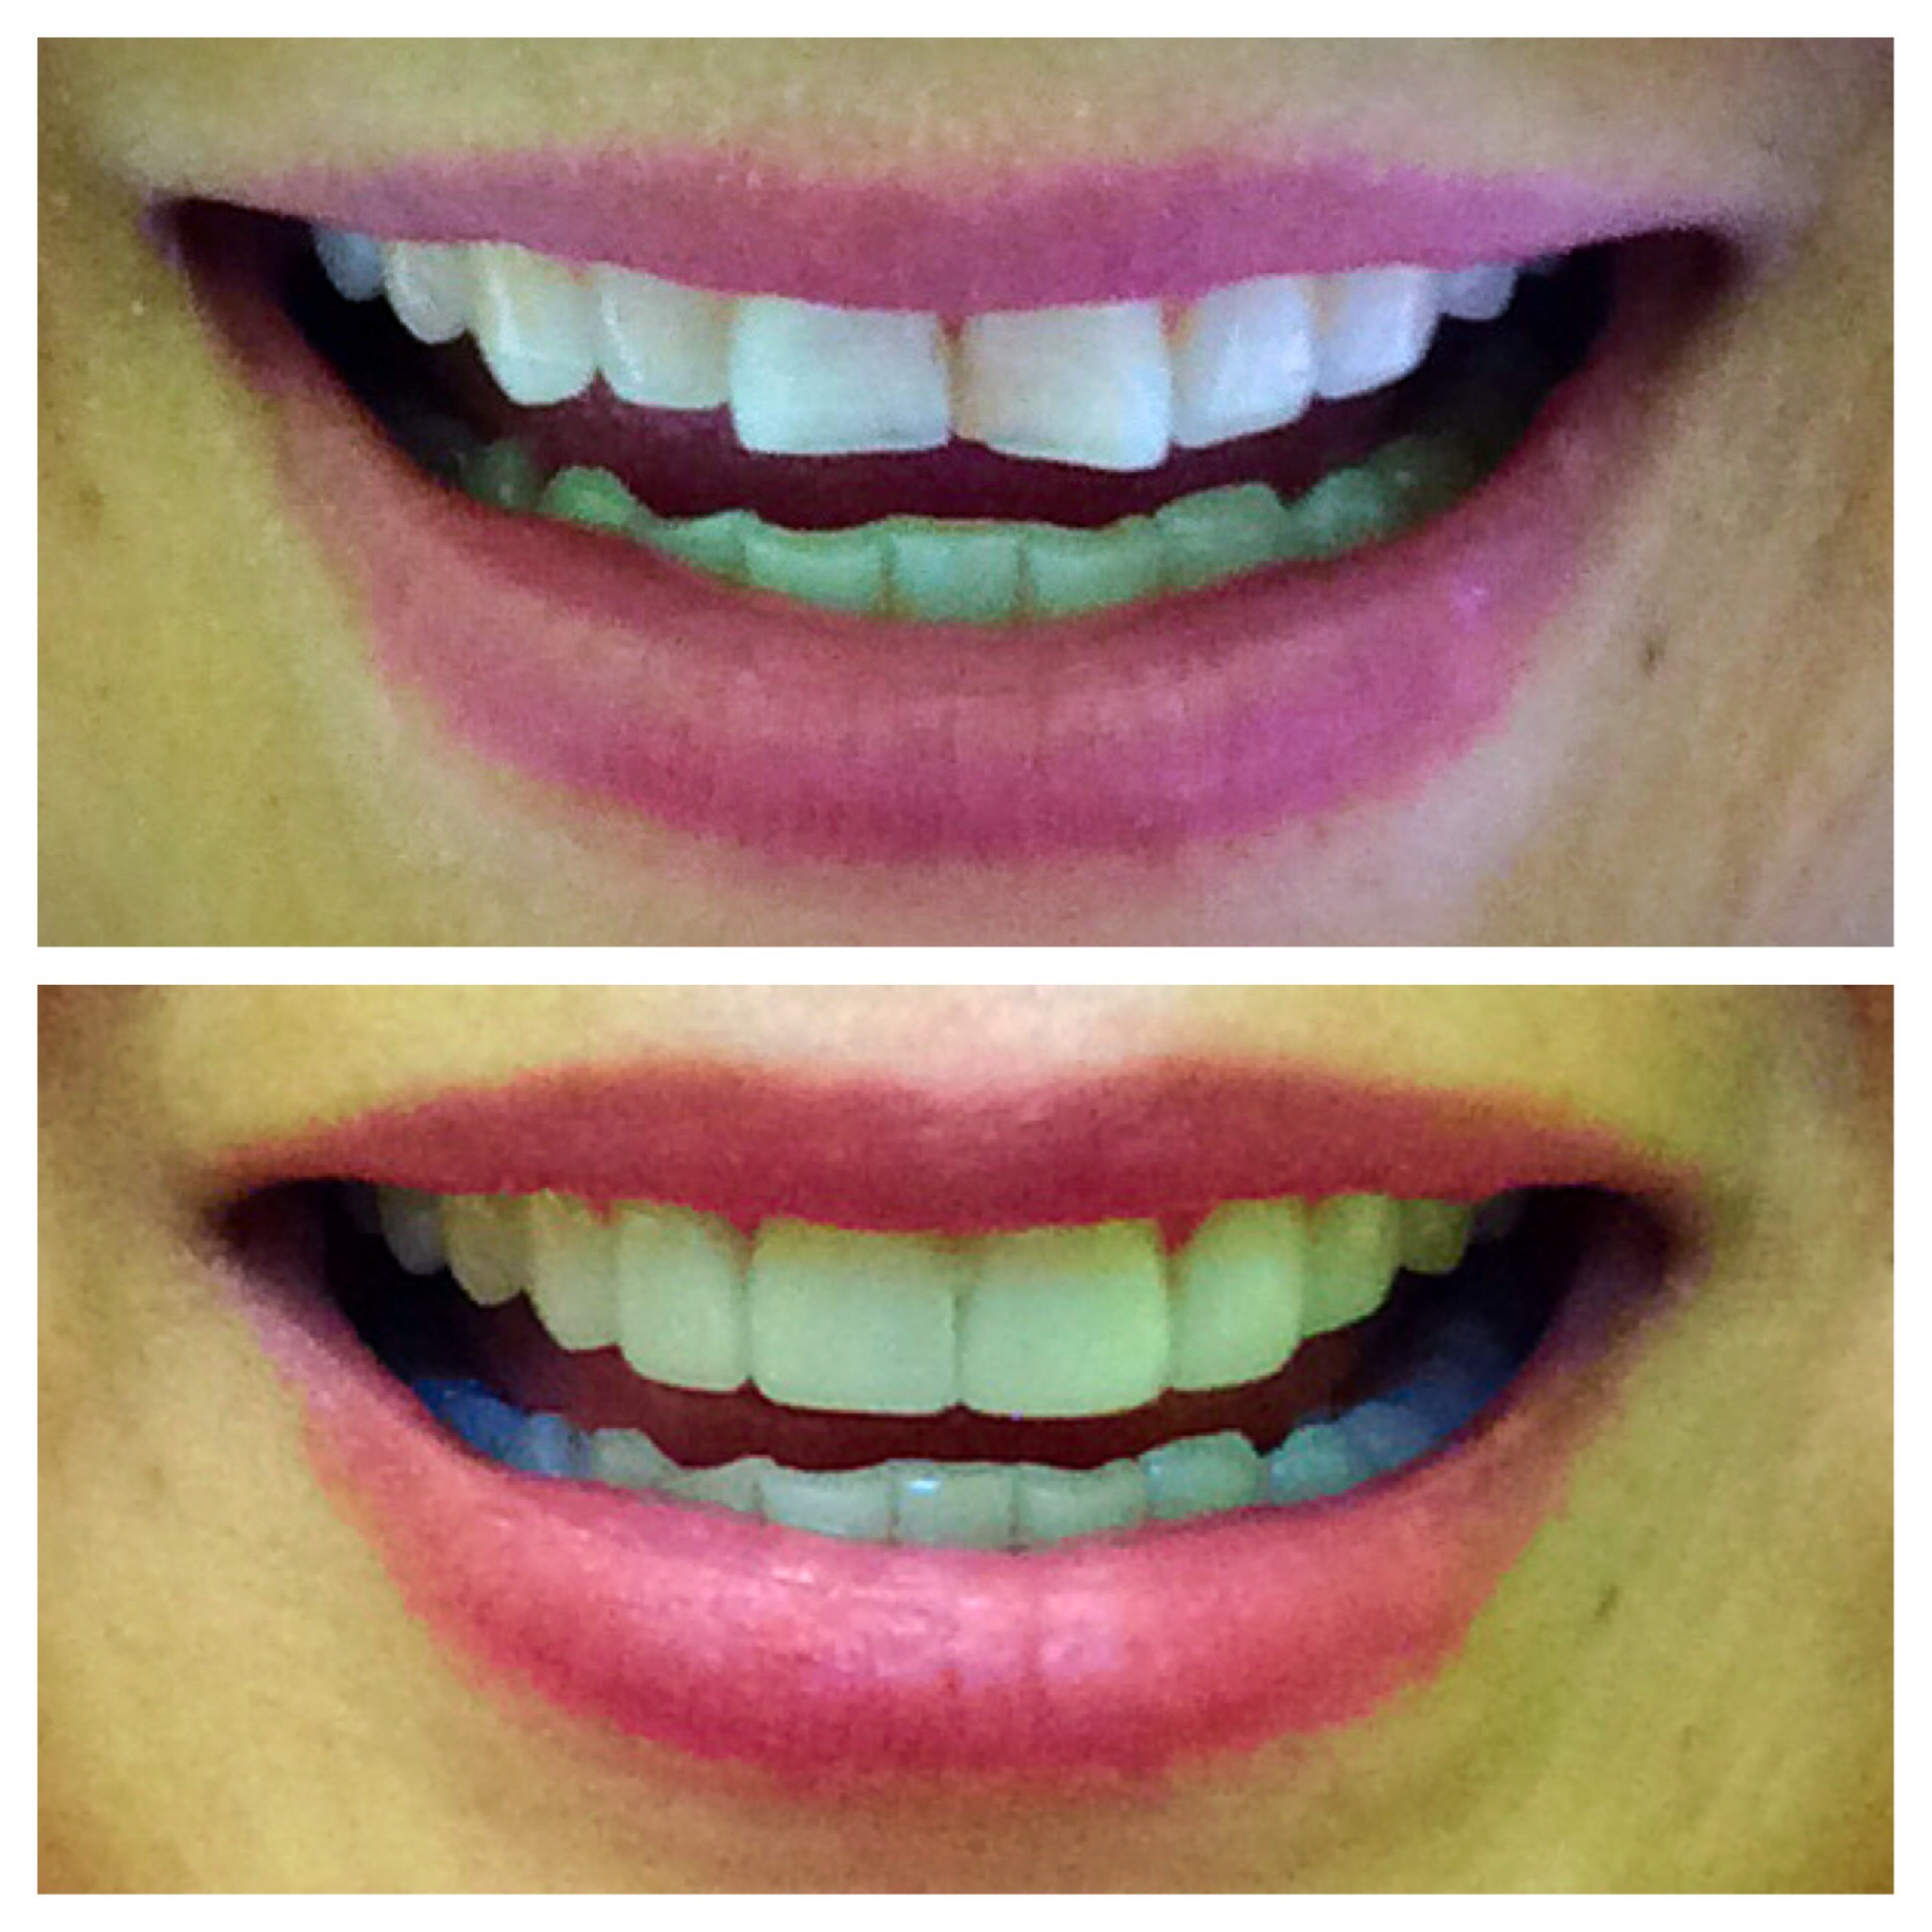 Veneer (before and after)